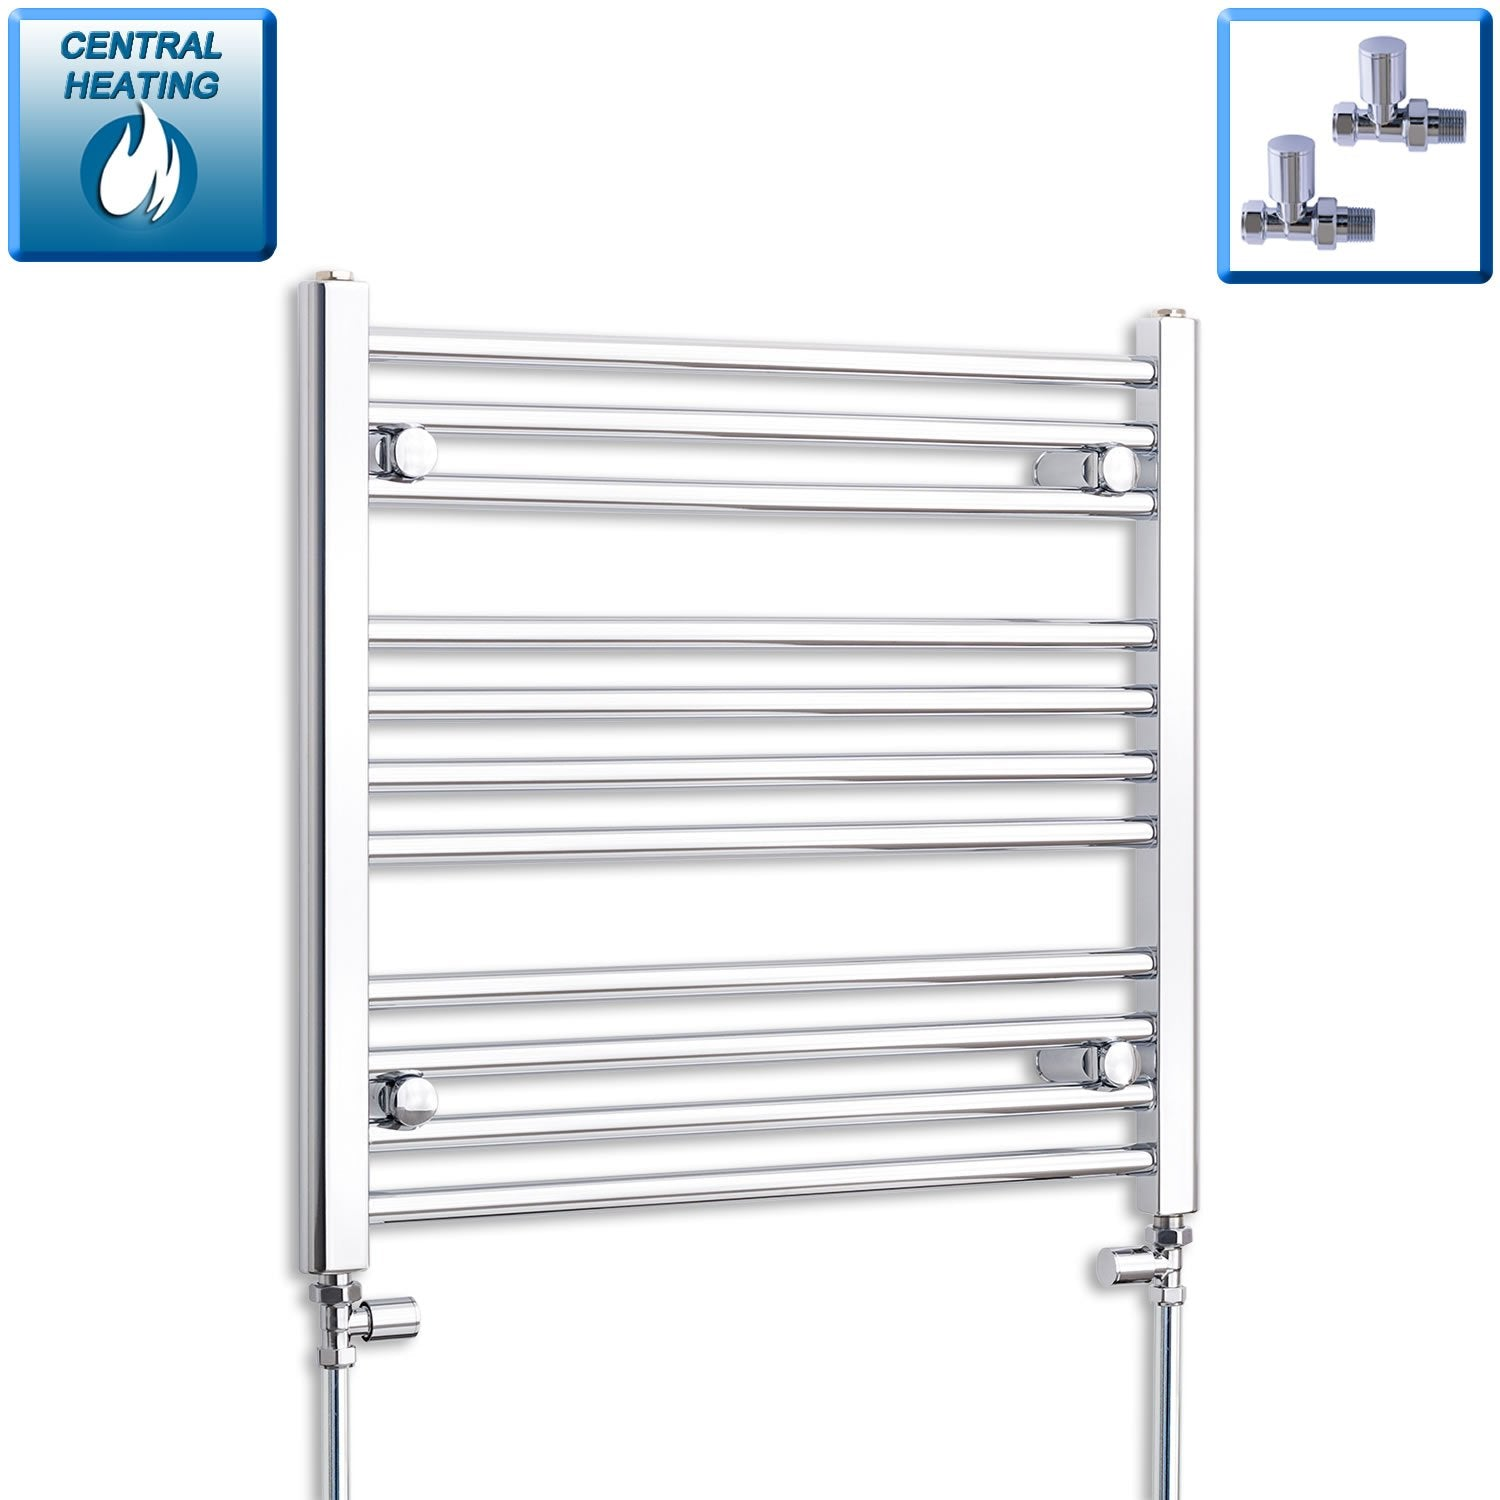 700mm Wide 600mm High Curved Chrome Heated Towel Rail Radiator HTR,With Straight Valve